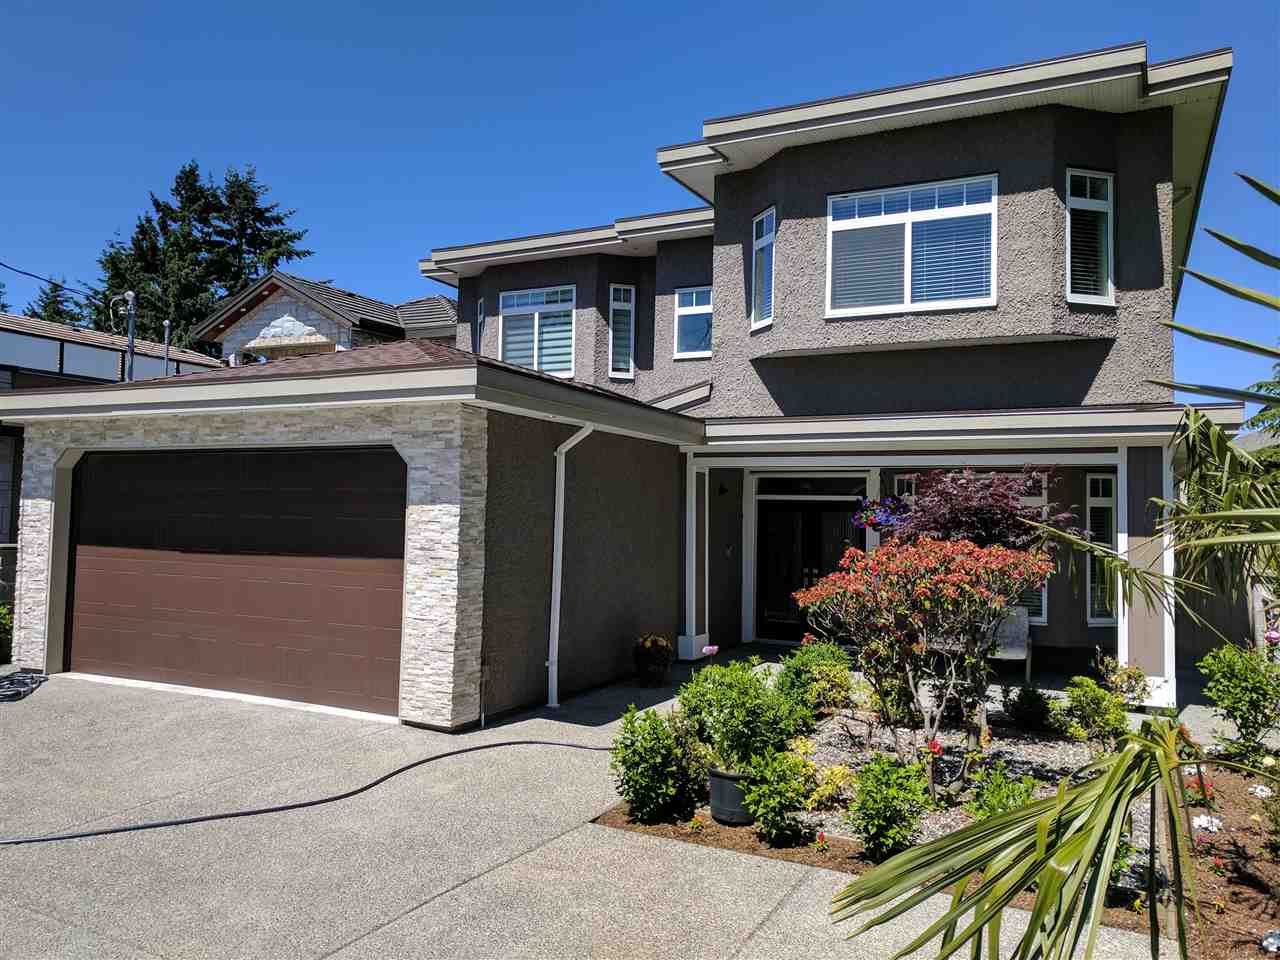 Beautiful spacious 3500 plus SF home situated on a 7200 SF lot. Enter the South facing front entrance into a 19' high foyer. Up the metal spindle stairway to the main flr w/10' ceilings. An open living/dining area w/gas F/P greets your guest. Into the open kitchen, nook & fam rm. There's also a convenient spice kit & a covered deck great for BBQ's. Master bdrm boast walk in closet & ensuite w/double sink & 2 person jetted tub. 3 additional bdrms on the main w/2 sharing a 3rd bath rm up. Luxury touches incl AC, radiant flr heat & HRV system, granite countertops, thick crown moldings, pot lighting, security cameras, both gas & electric cooking. Legal 2 bdrm suite down w/high income. 9' ceilings on this level with Den, hobby & rec rm; possible 2nd suite. Double garage w/handy workshop area.